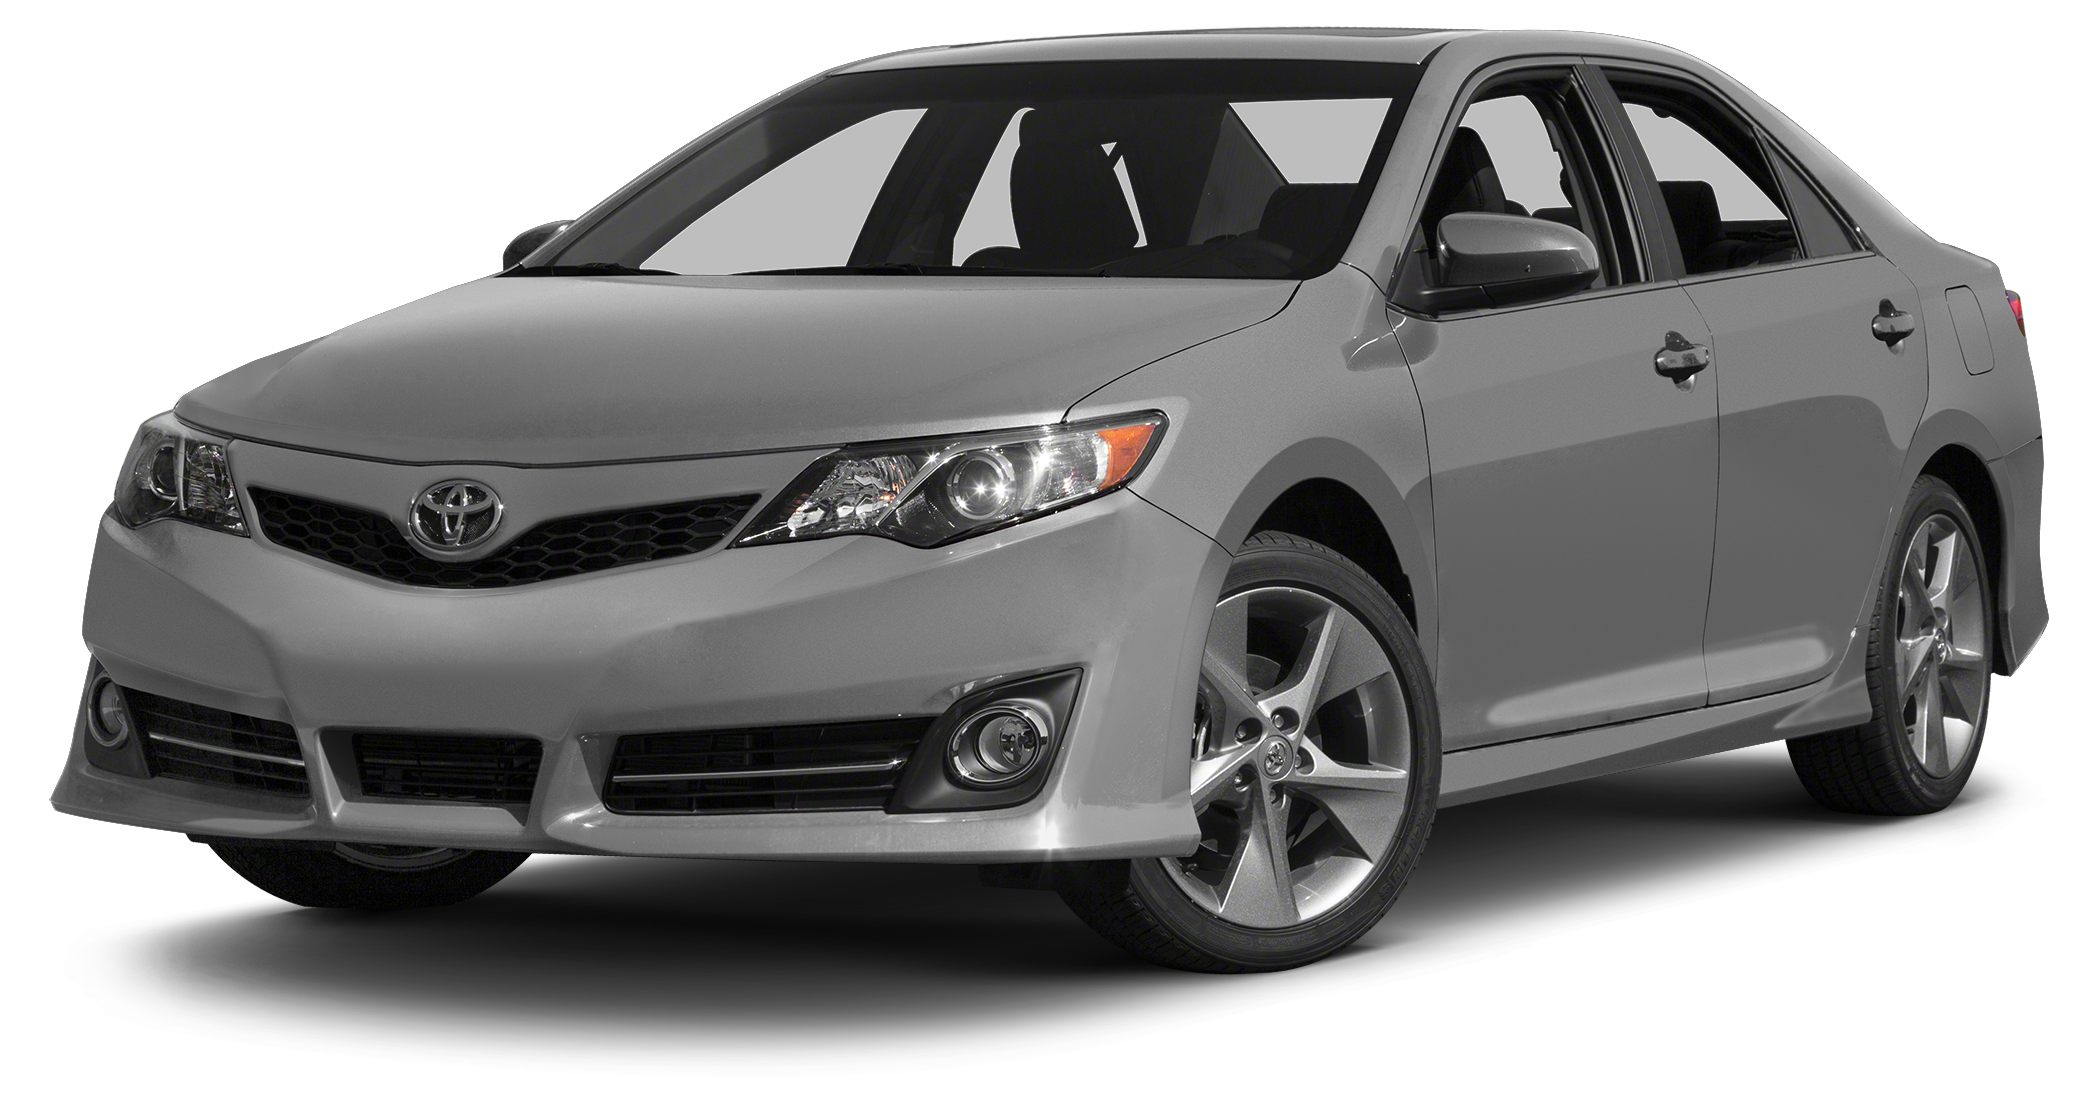 2014 Toyota Camry SE CARFAX 1-Owner SE trim FUEL EFFICIENT 35 MPG Hwy25 MPG City iPodMP3 Inpu